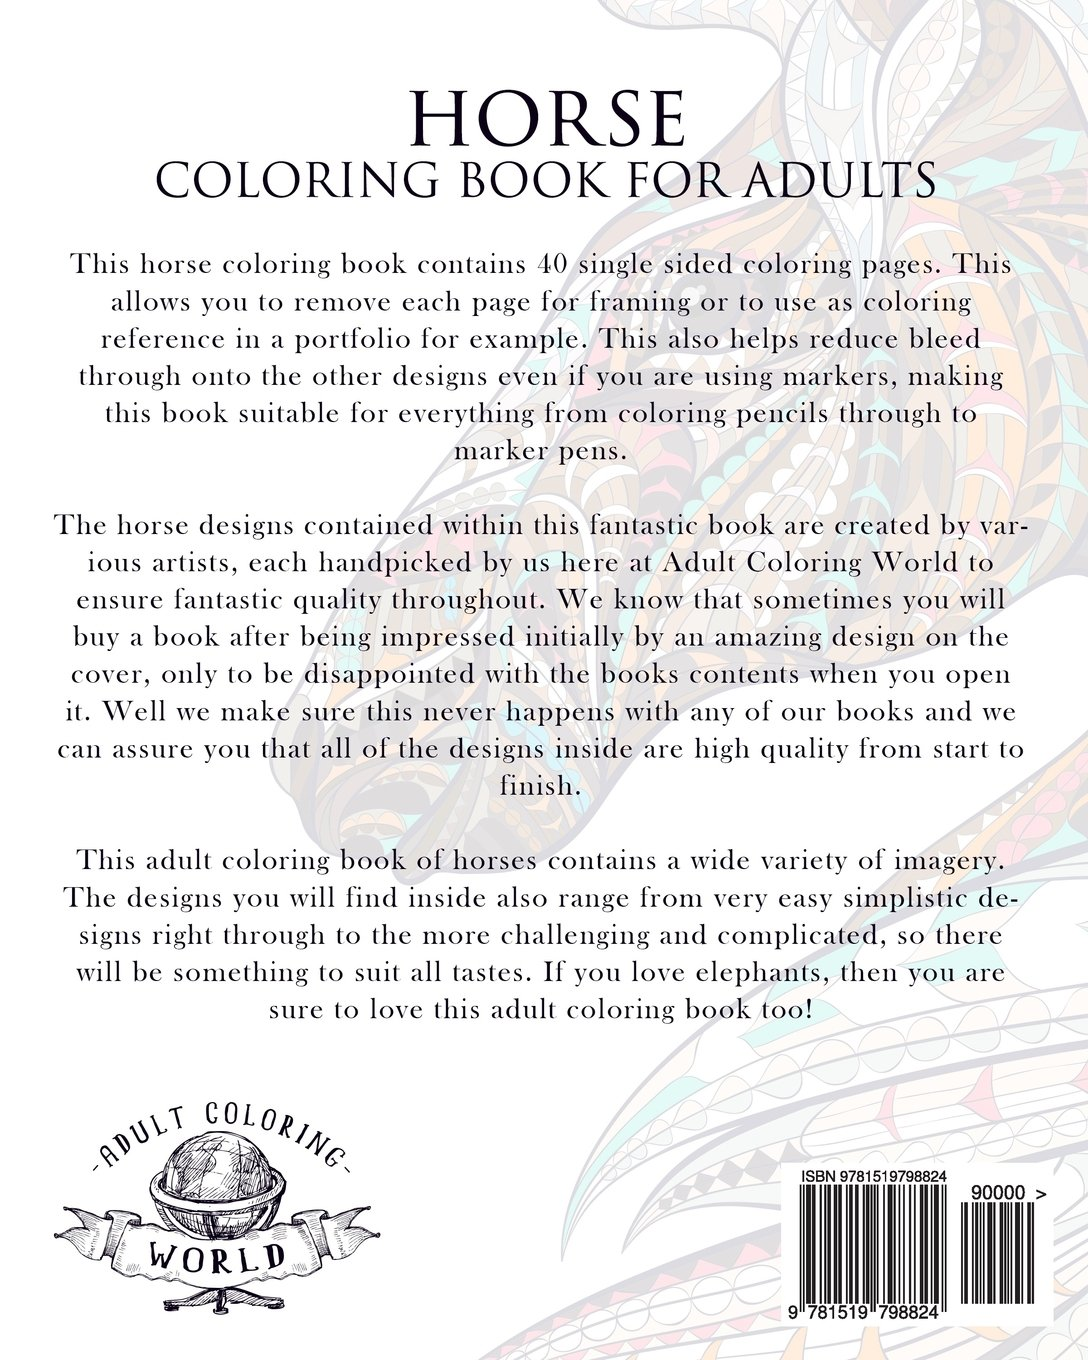 Horse Coloring Book For Adults An Adult Of 40 Horses In A Variety Styles And Patterns World 9781519798824 Books